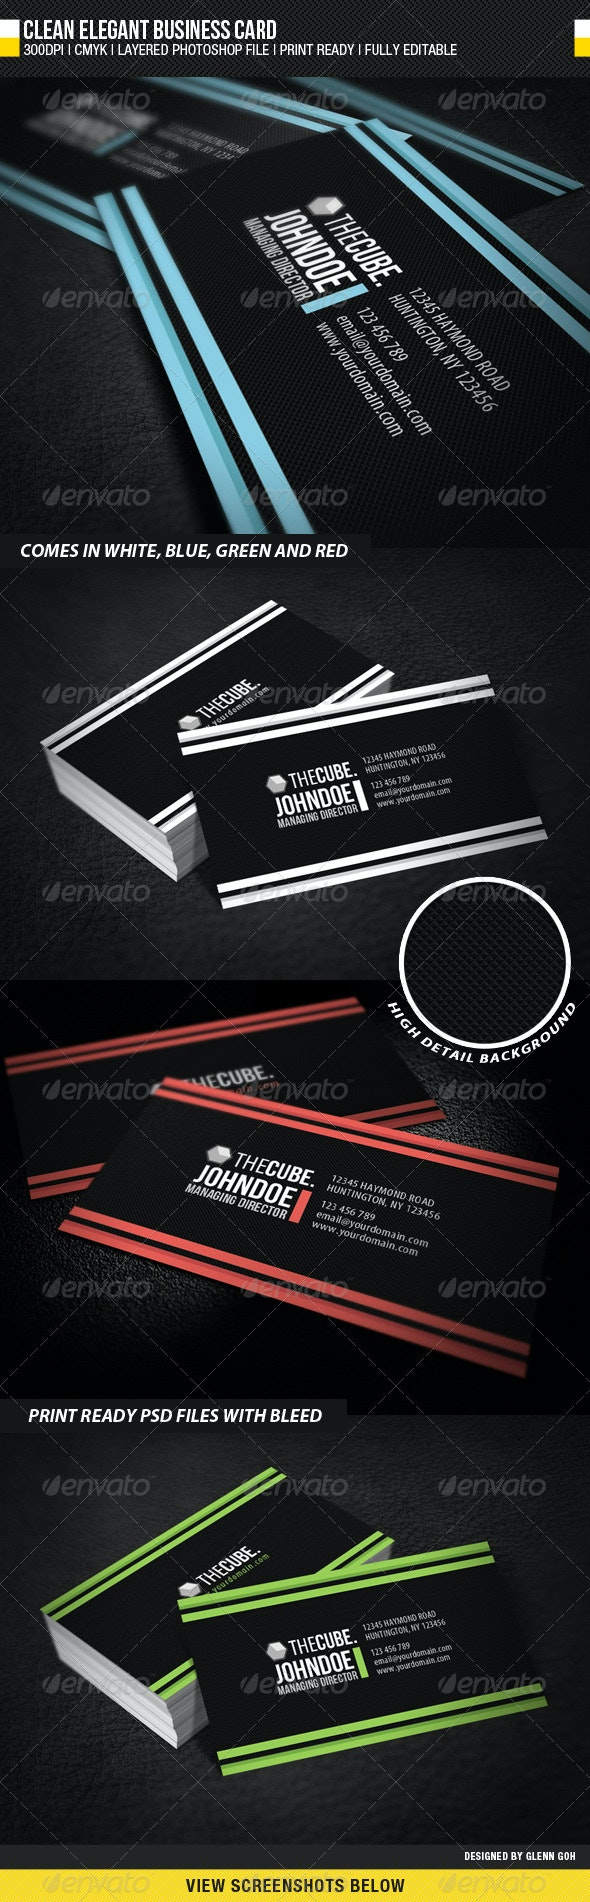 Clean Elegant Business Card - Corporate Business Cards